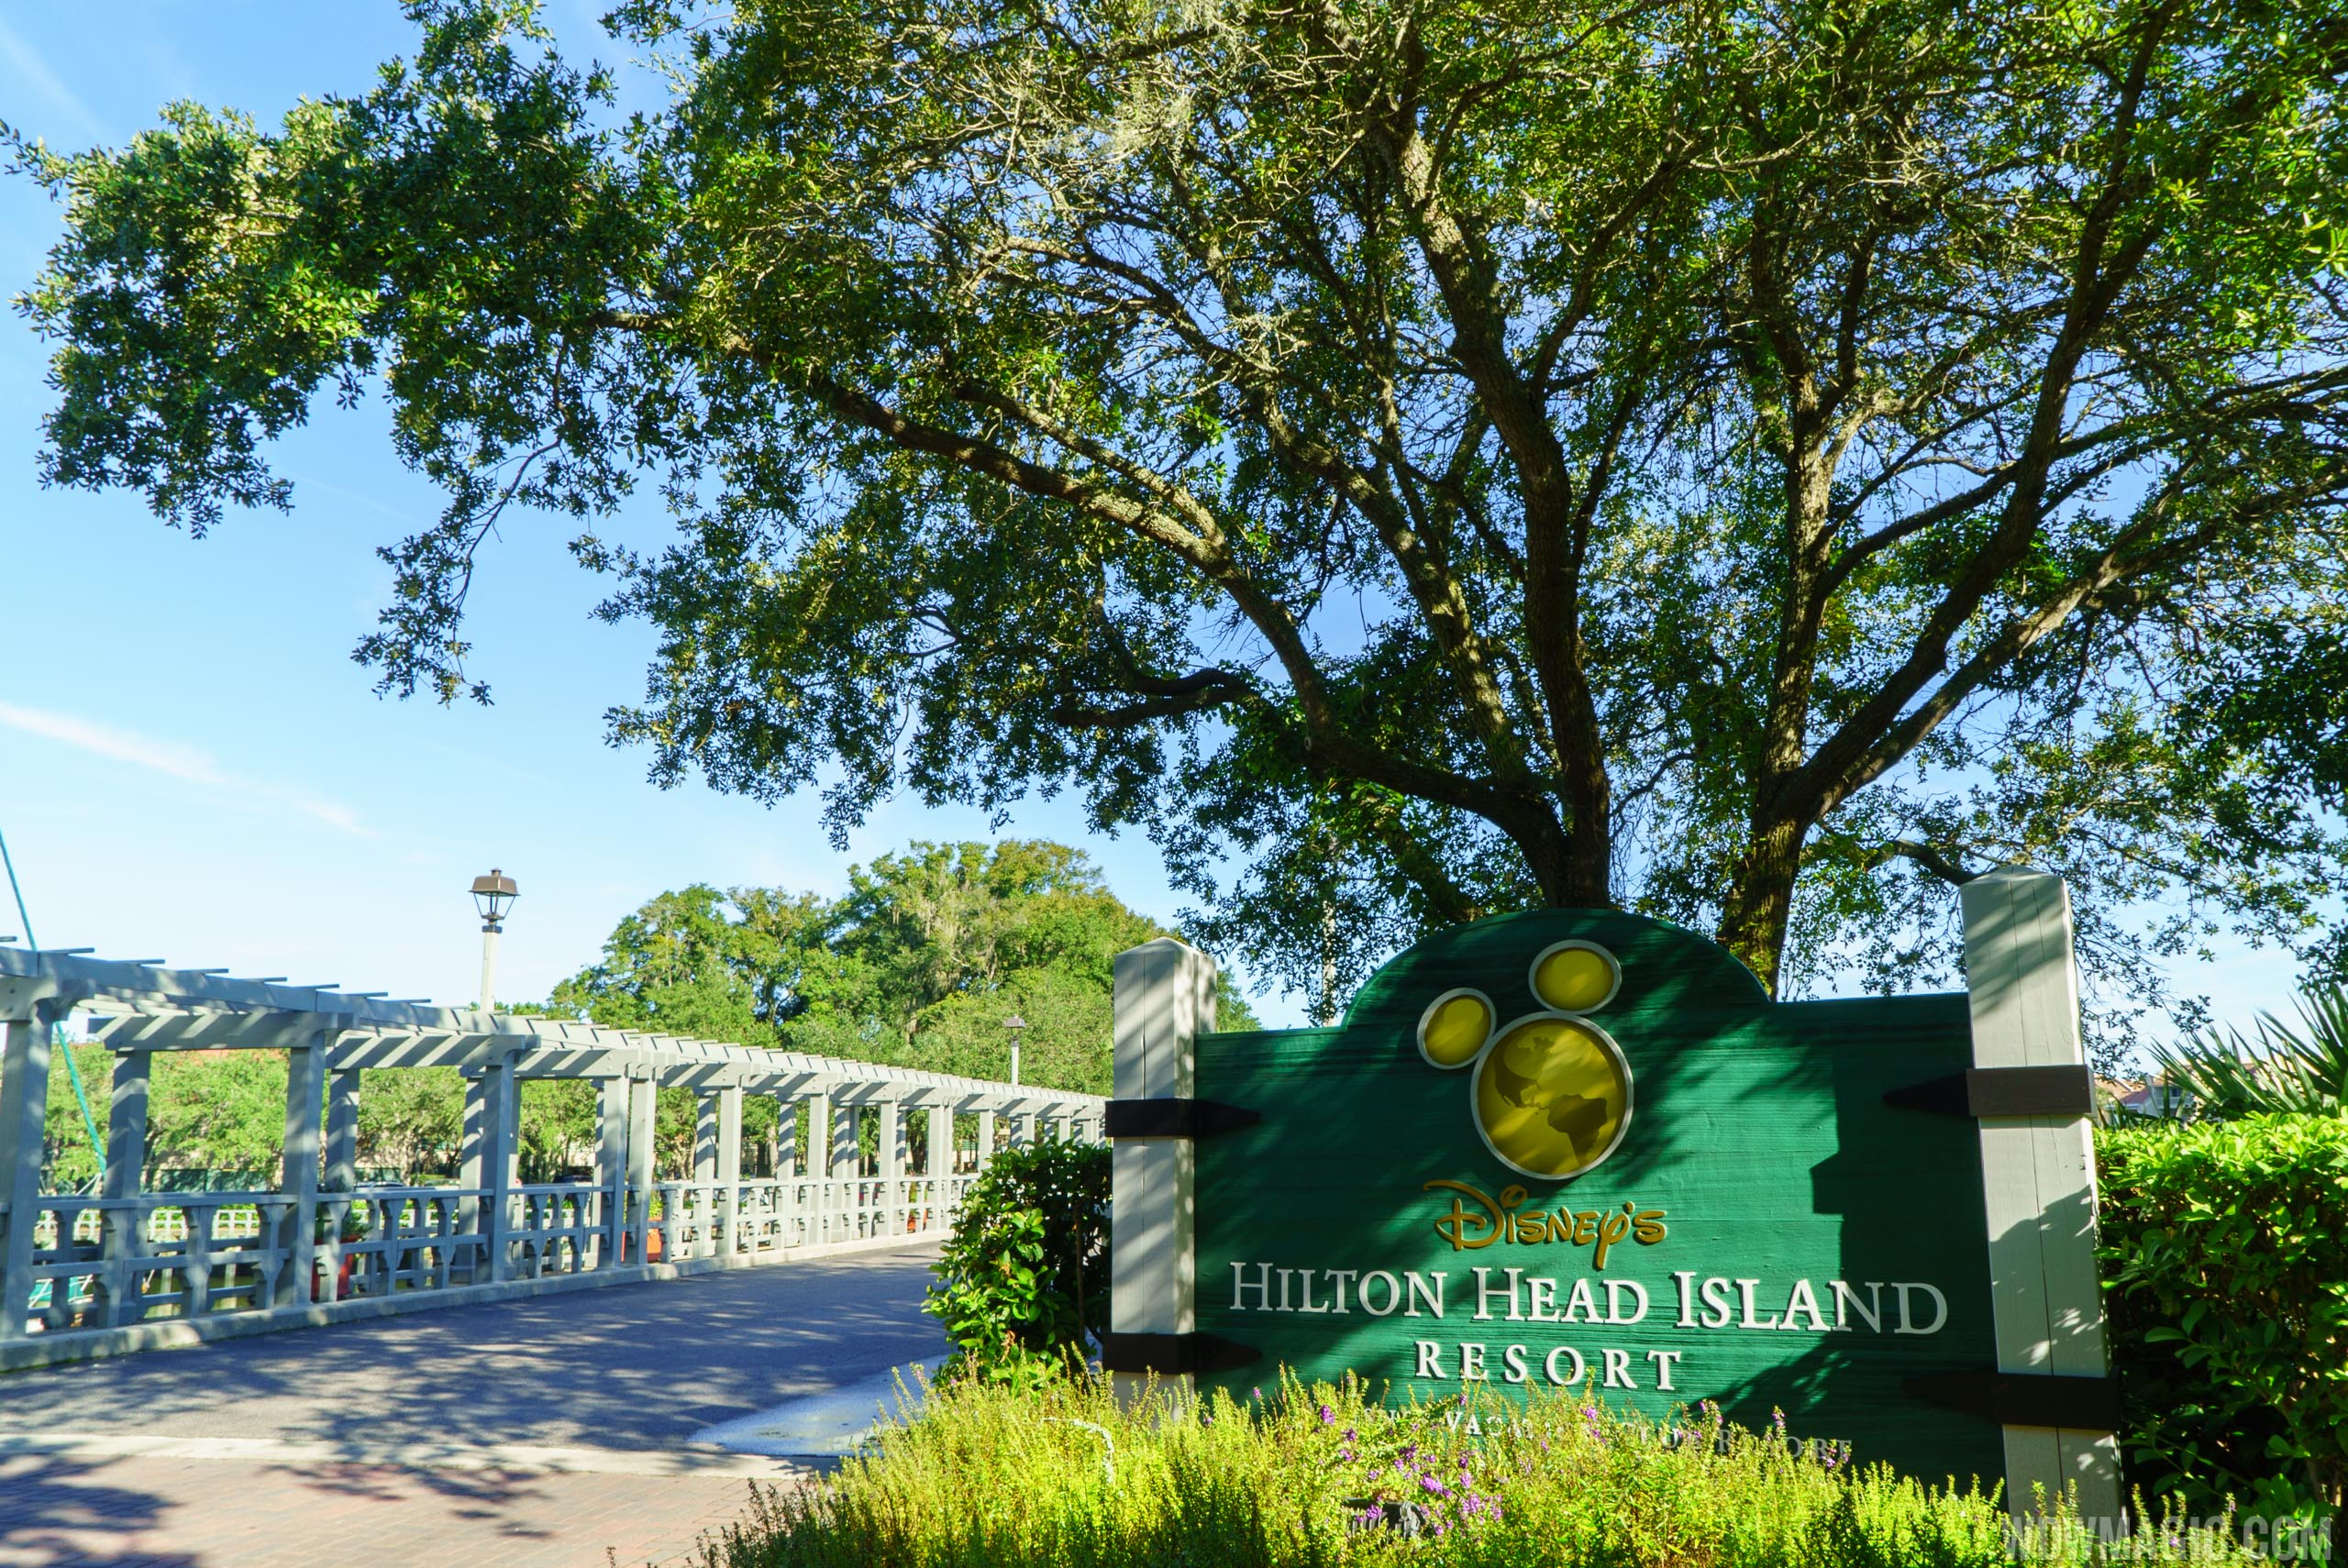 Disney's Hilton Head Island Resort - Entrance